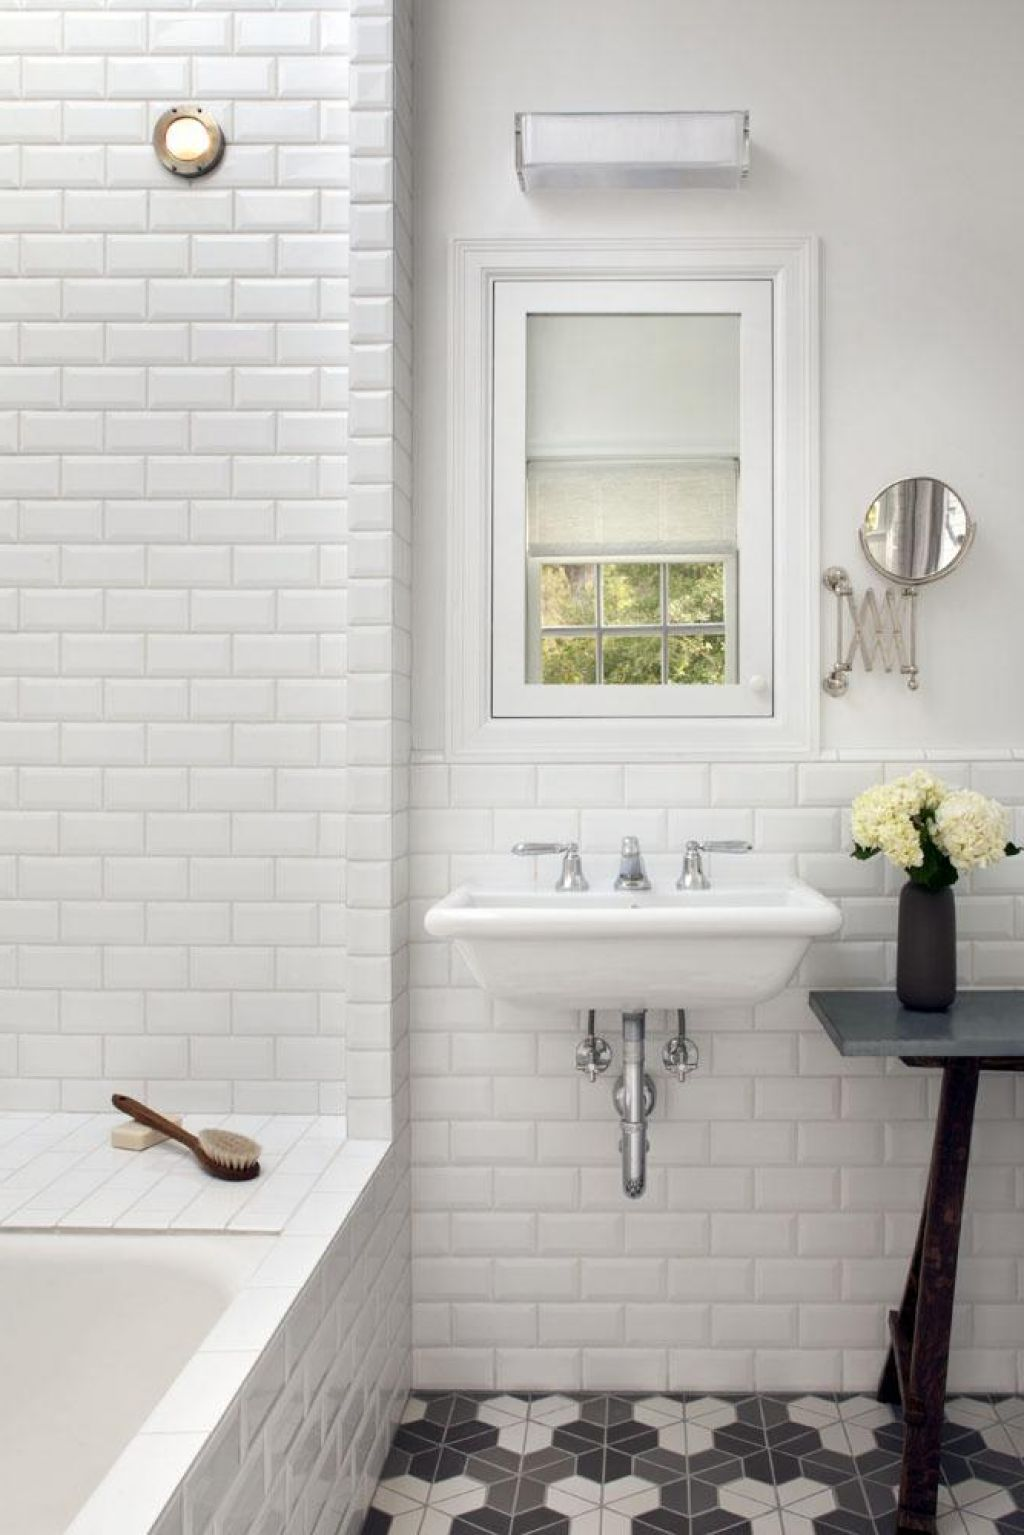 Image of: Subway Tile Bathroom | 6041 interior | Pinterest | Subway ...